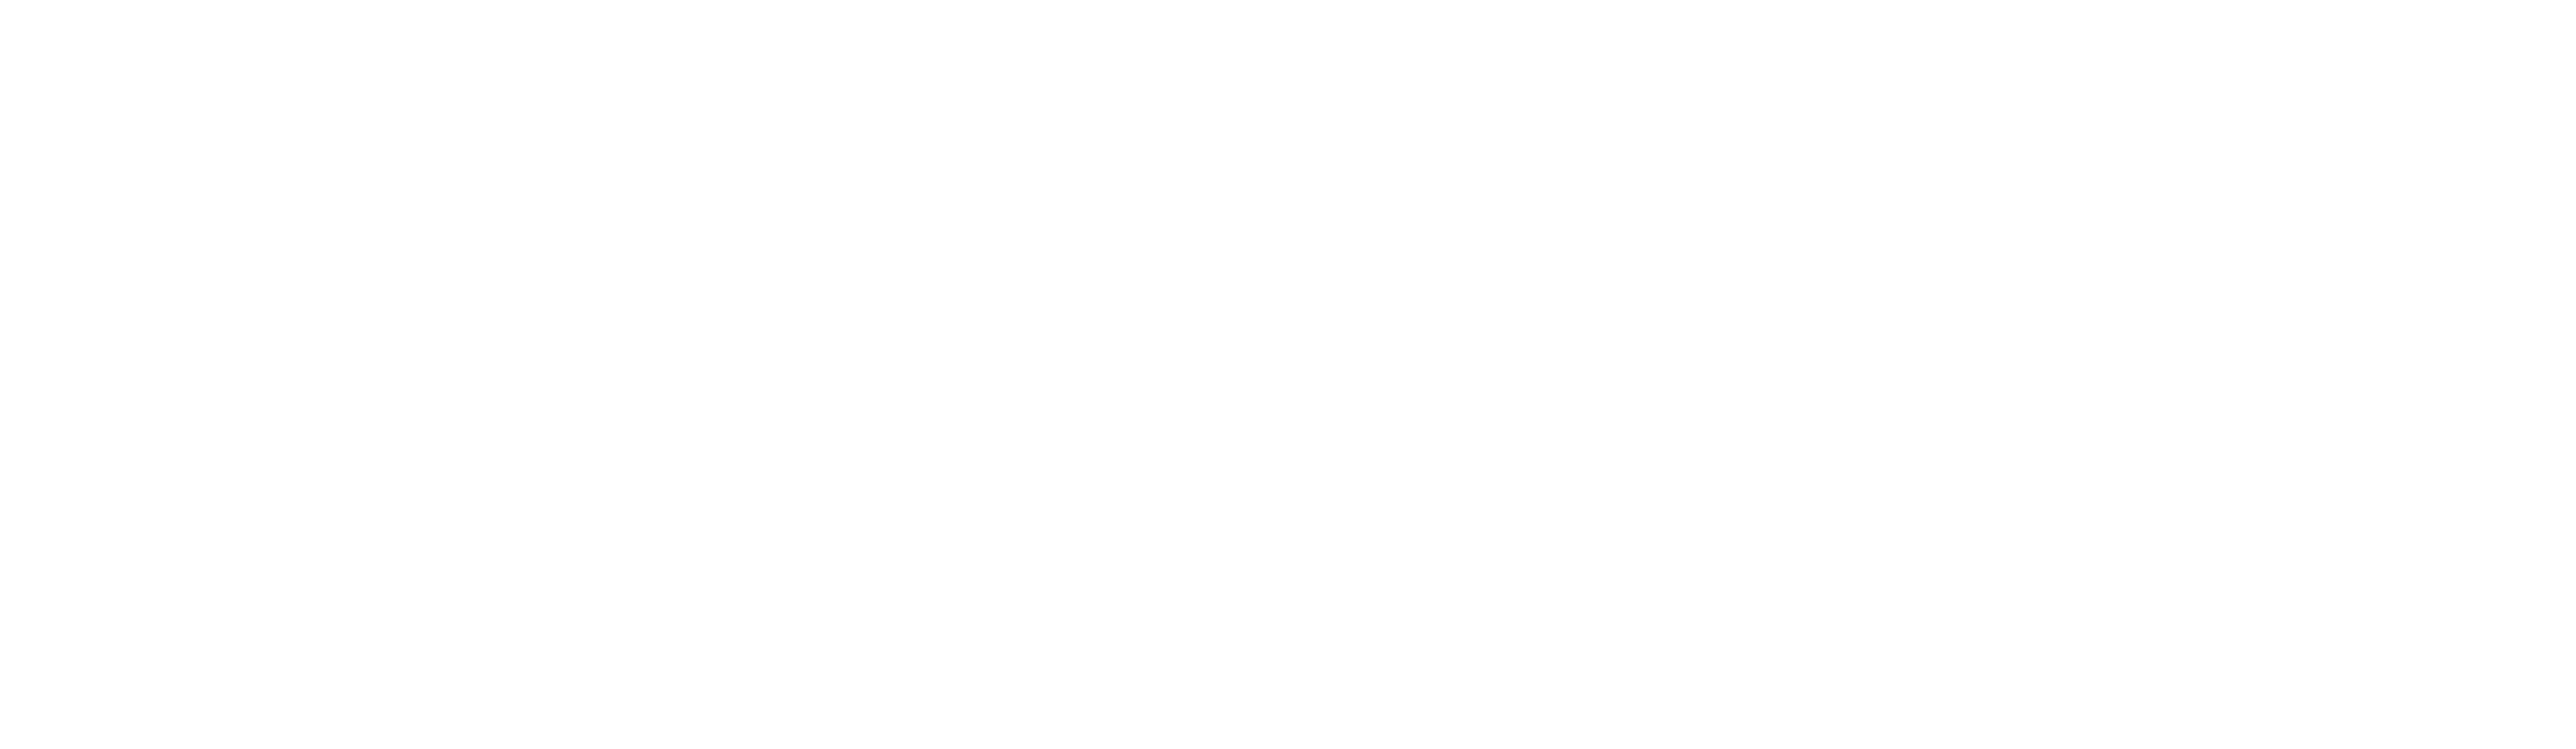 LatentStructure Technologies